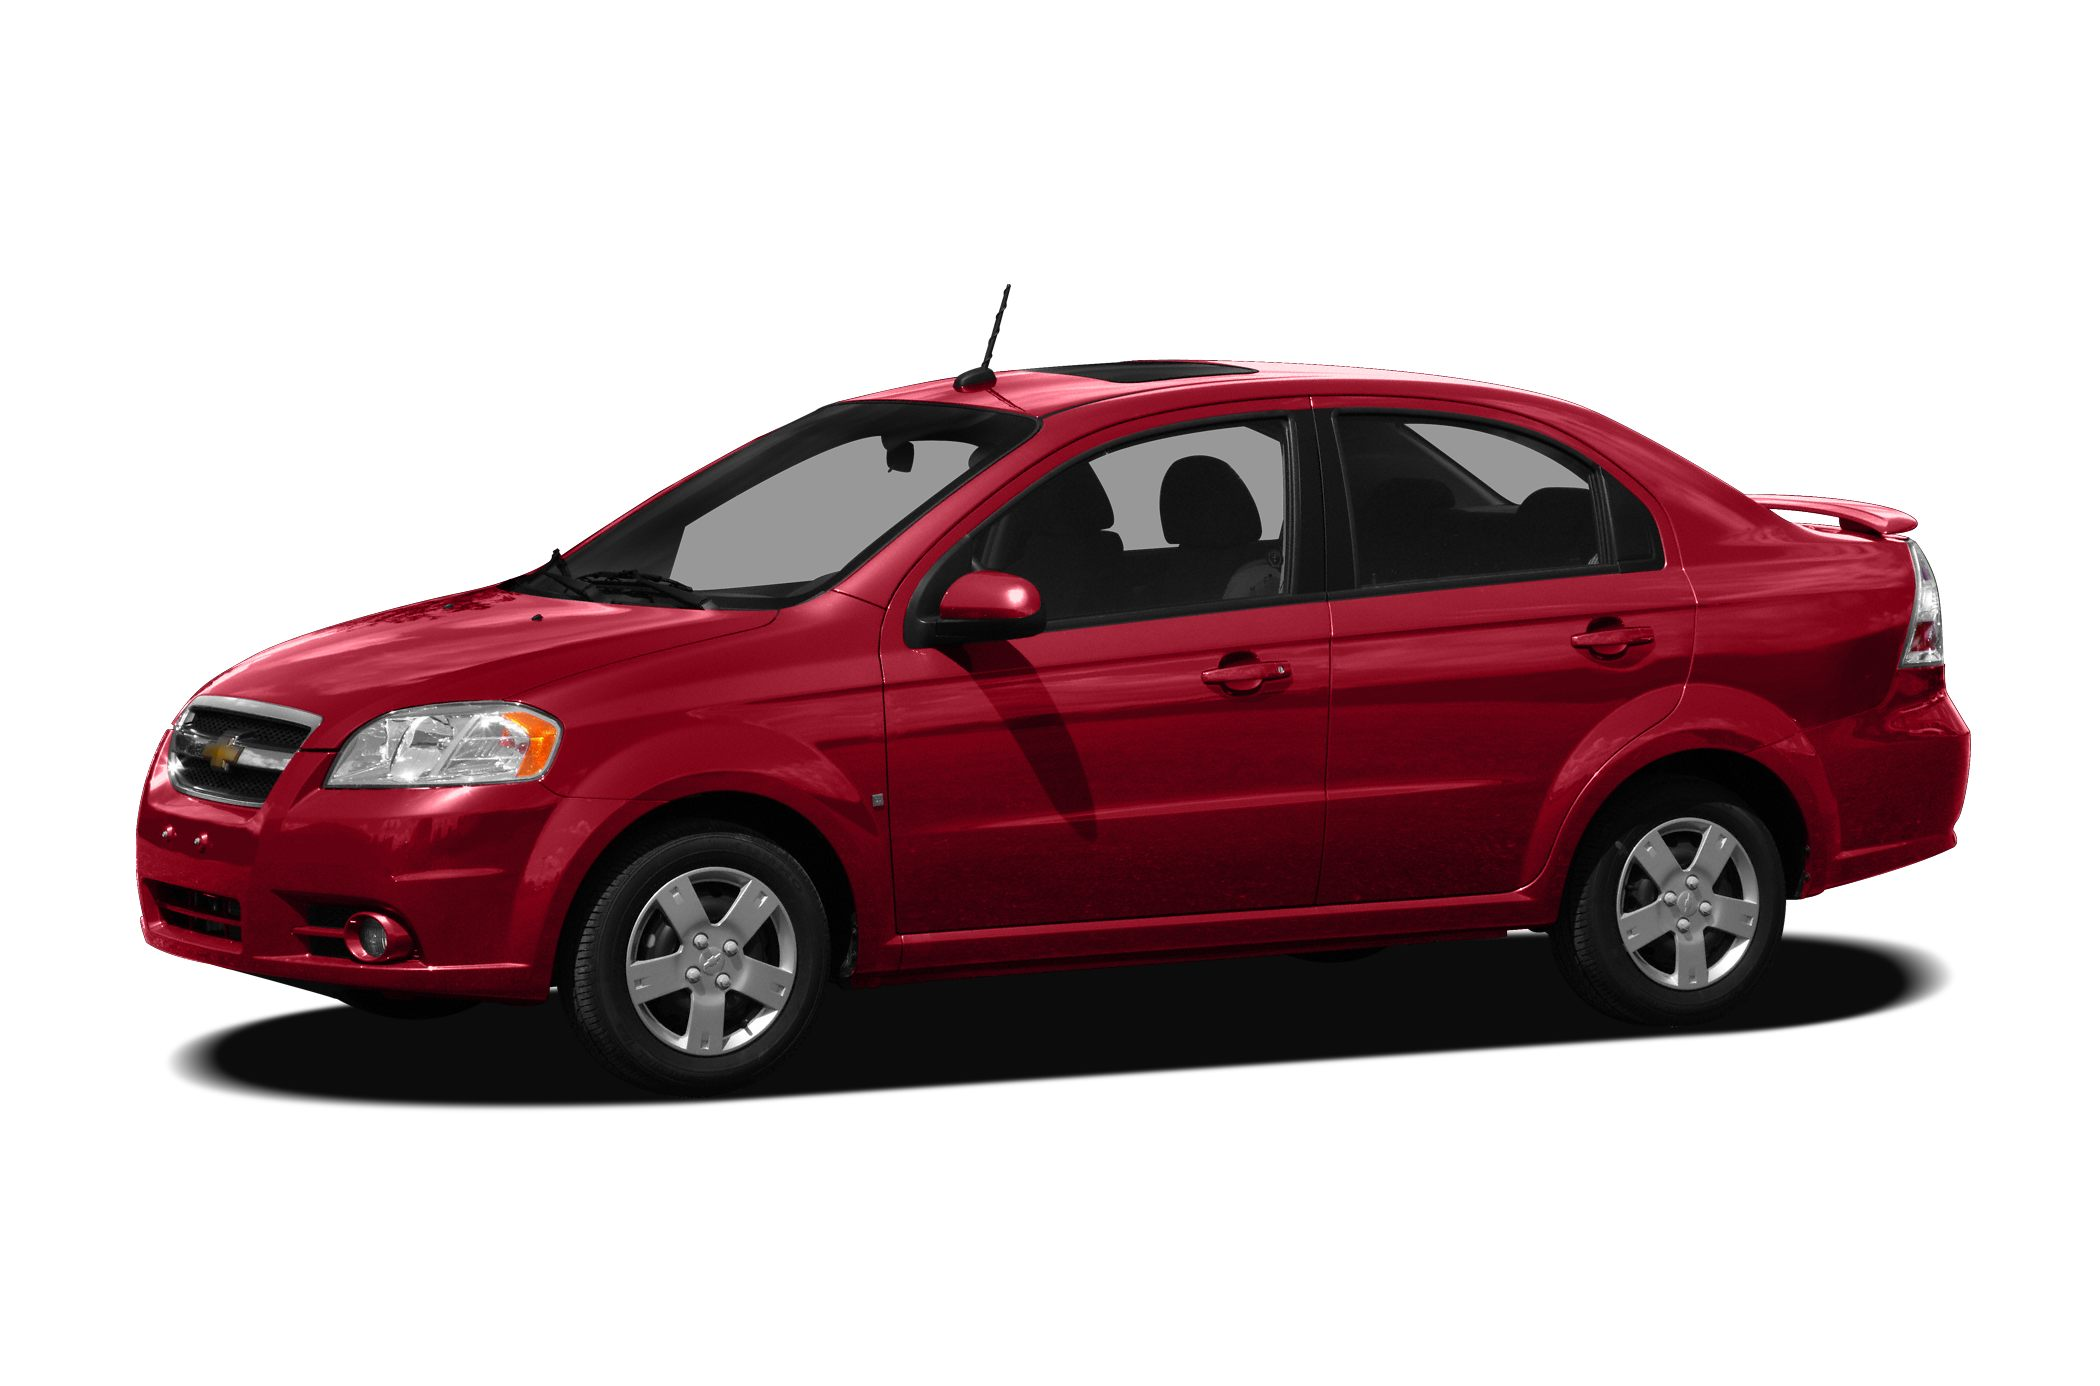 2010 Chevrolet Aveo LS Sedan for sale in Selinsgrove for $9,988 with 80,059 miles.